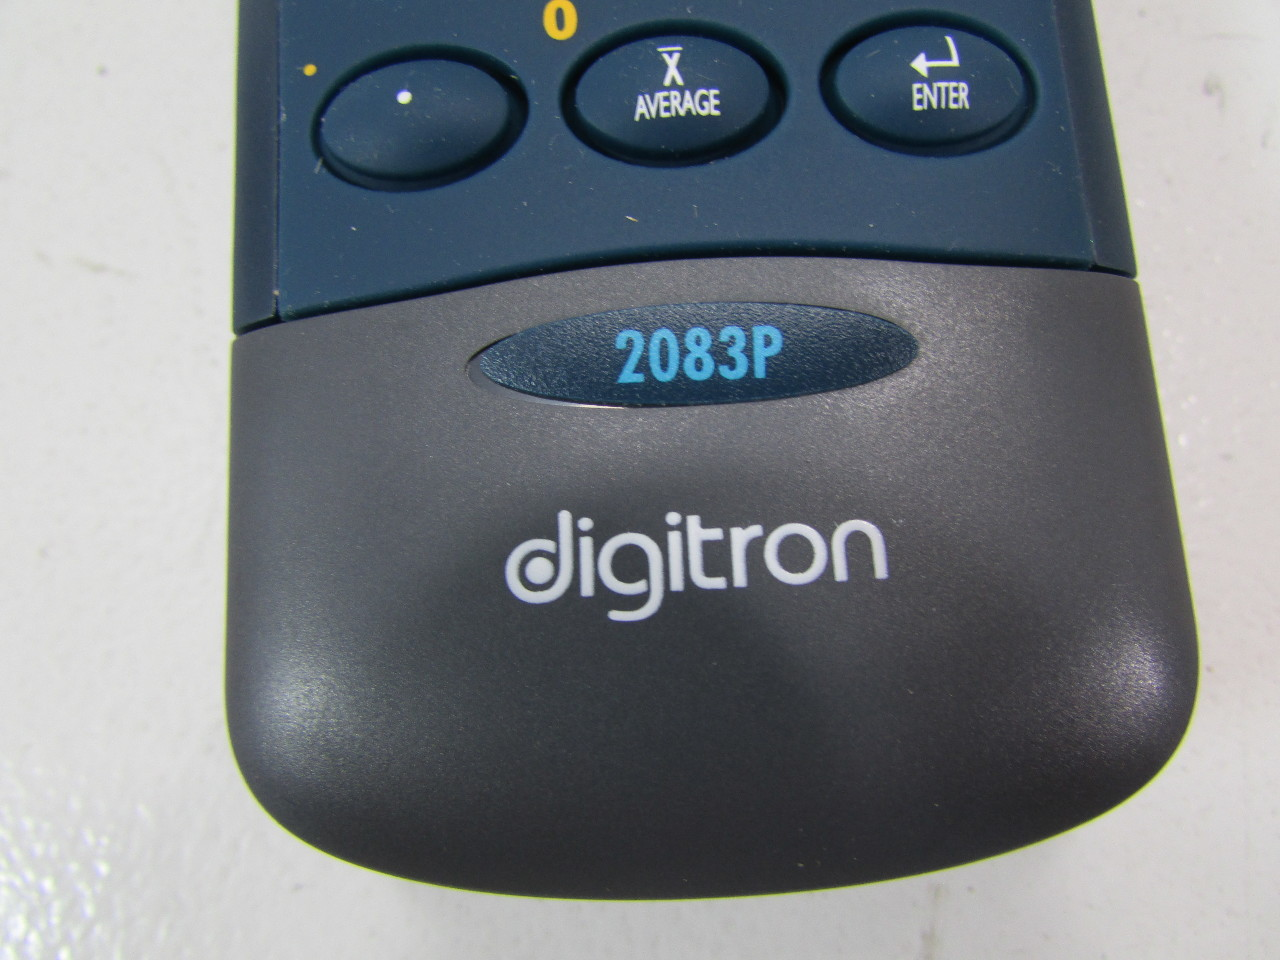 Digitron 2083p